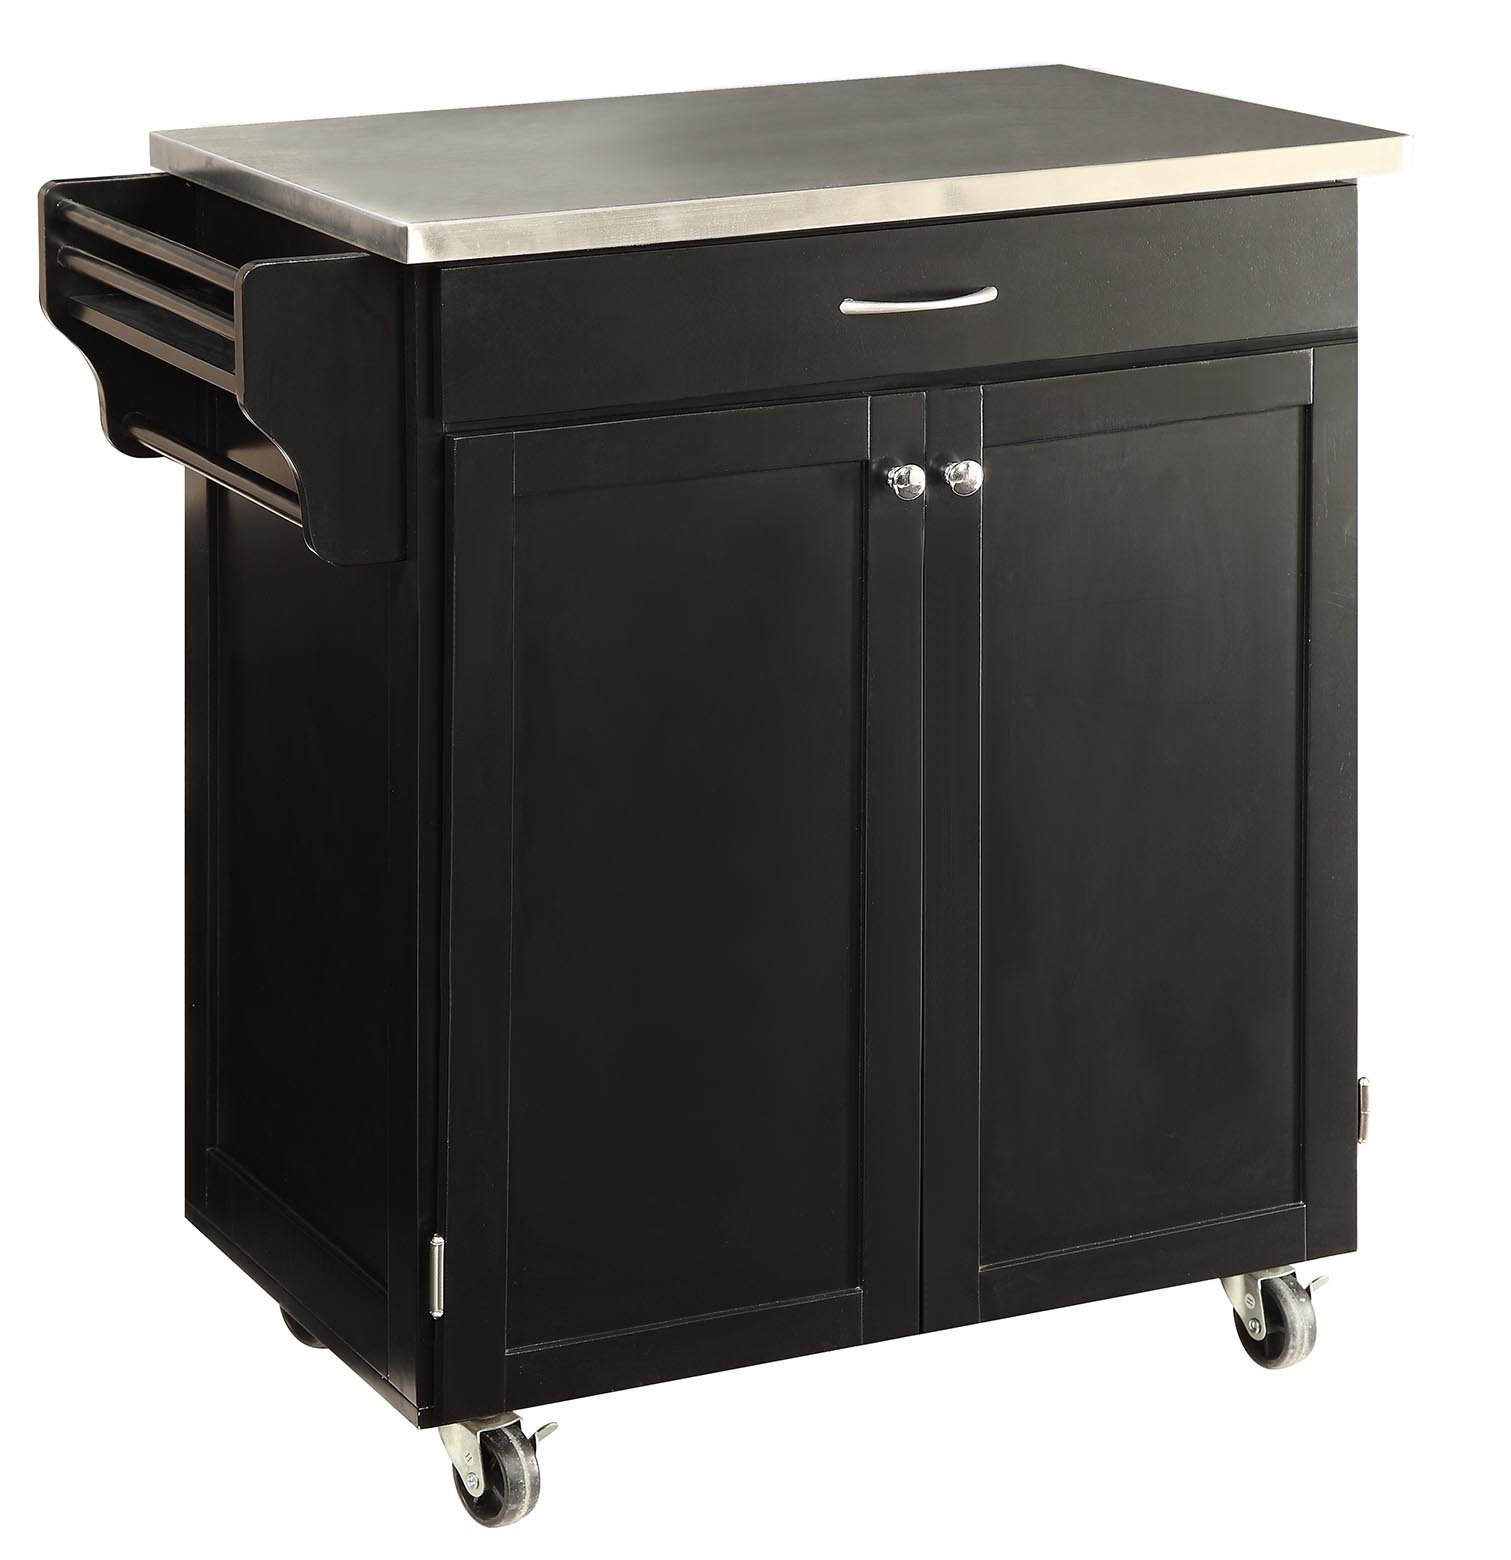 "Oliver and Smith - Nashville Collection - Mobile Kitchen Island Cart on Wheels - Black - Stainless Steel Top - 33"" W x 18"" L x 36"" H"